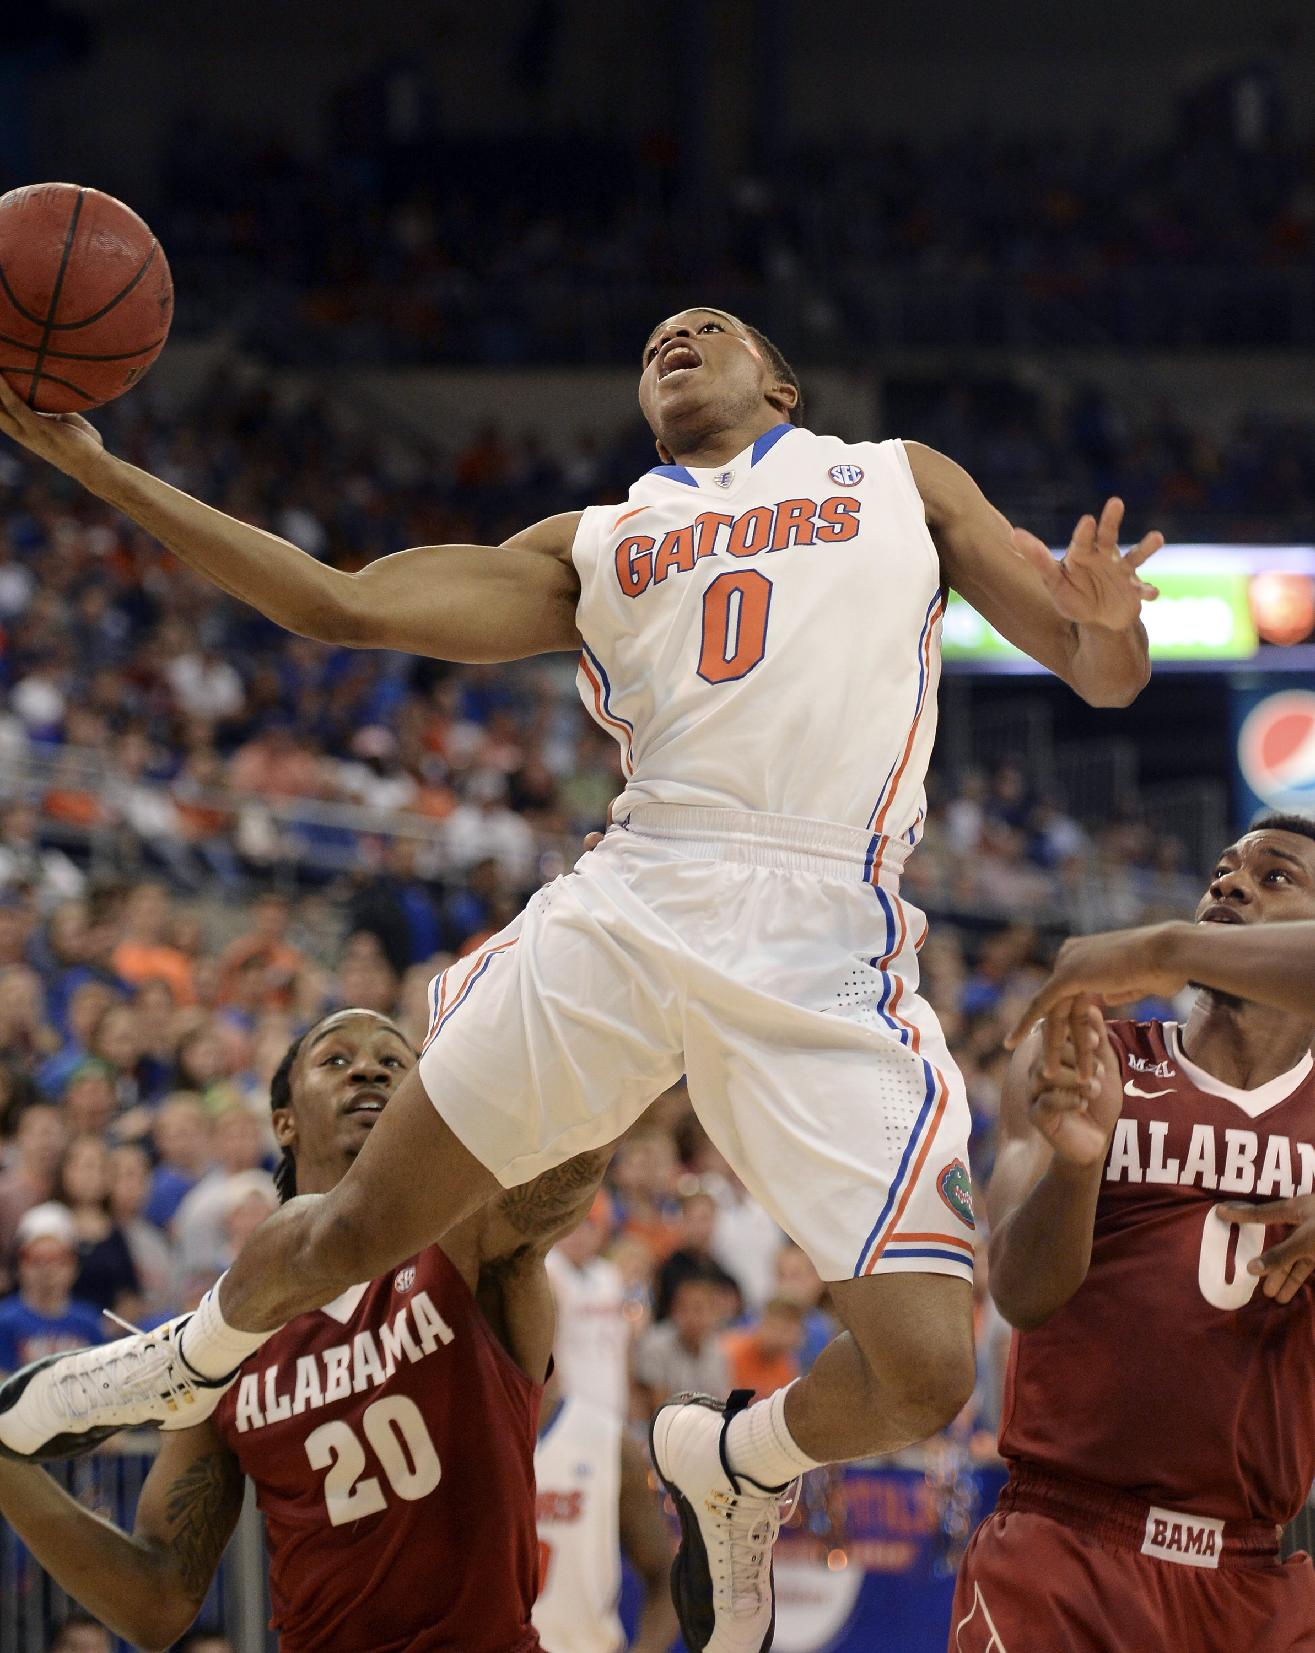 Florida's Kasey Hill goes up for two points as Alabama guard Levi Randolph (20) and Algie Key (0) look on during the first half of an NCAA college basketball game Saturday, Feb. 8, 2014, in Gainesville, Fla